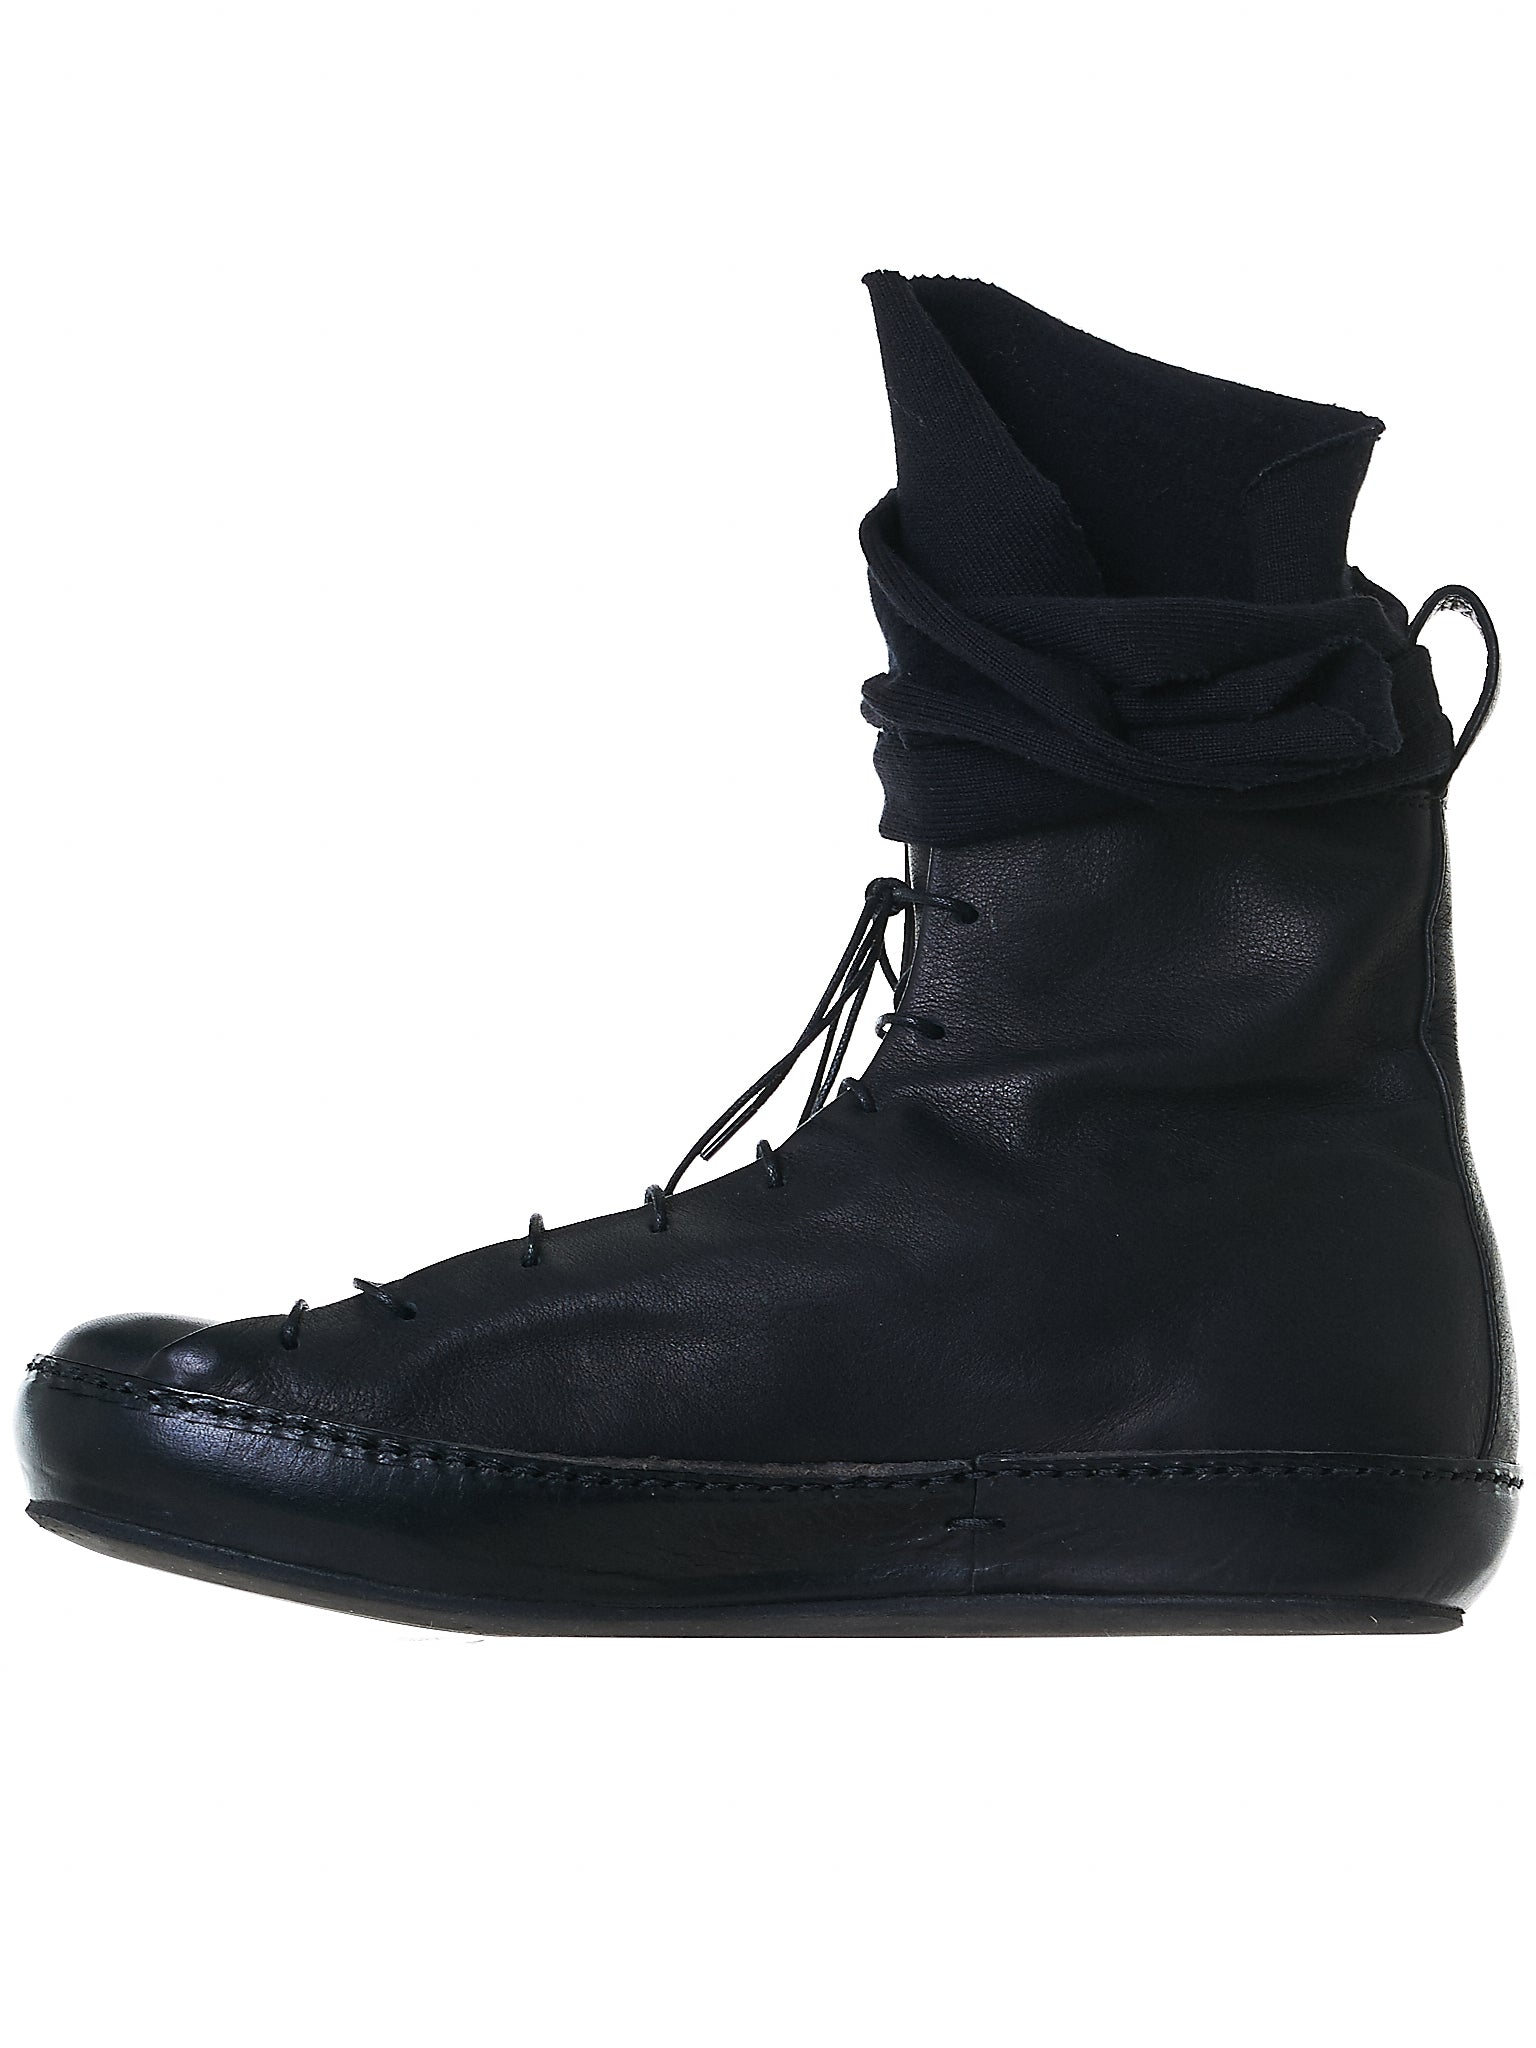 High-Top Lined Sneakers (SW9P2 SY 1.0 BLACK)